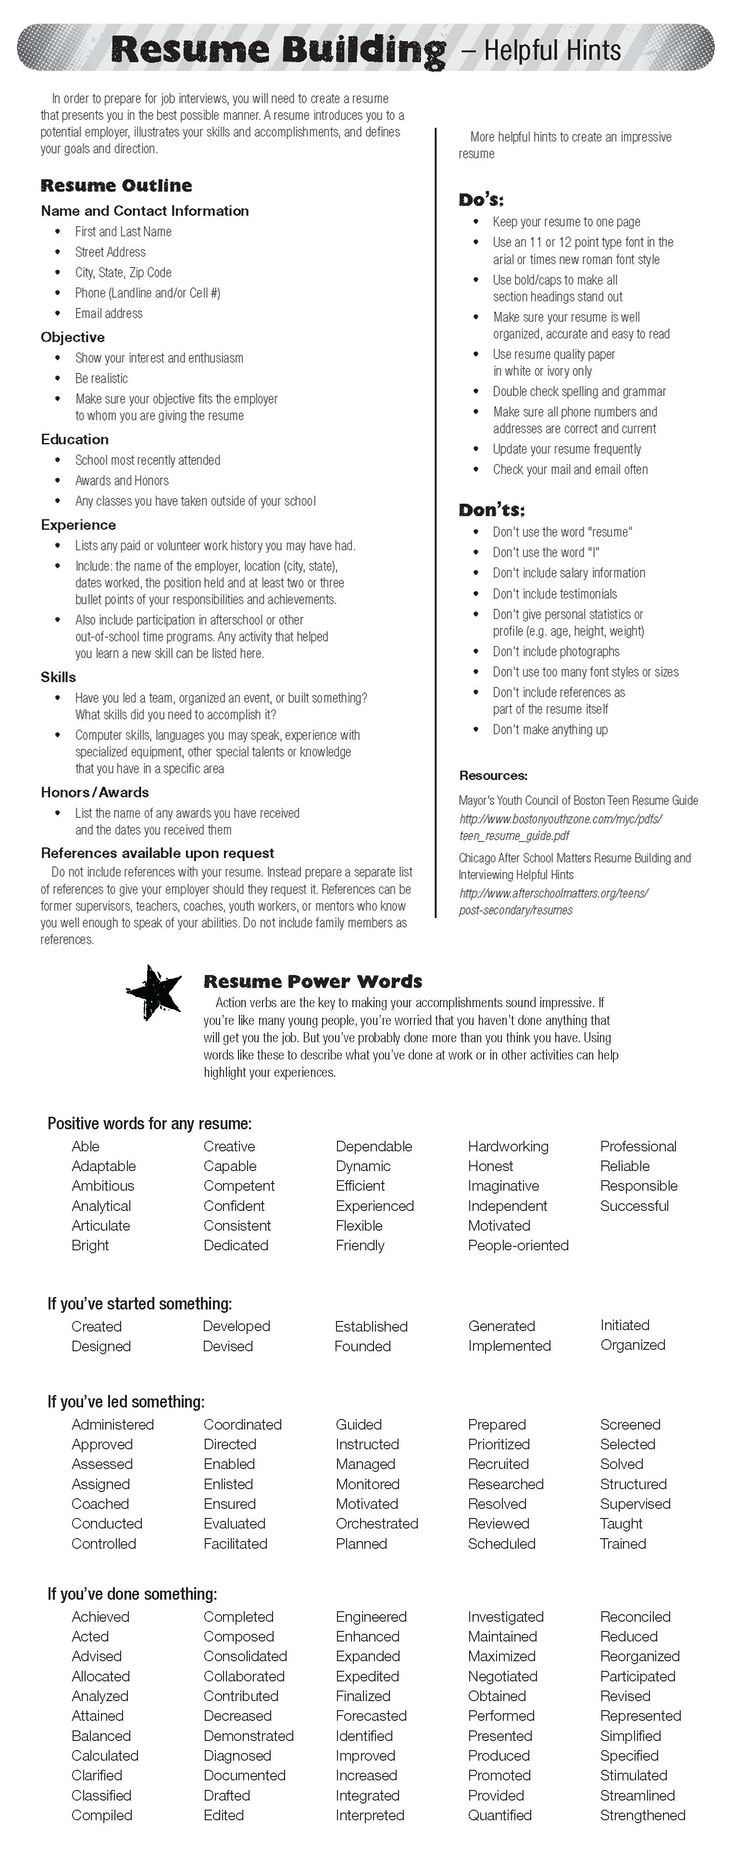 Picnictoimpeachus  Ravishing  Ideas About Resume On Pinterest  Cv Format Resume  With Engaging Check Out Todays Resume Building Tips Resume Resumepowerwords With Enchanting What To Put On A Resume For Skills Also Resume Examples Customer Service In Addition Occupational Therapist Resume And Government Resume Template As Well As Resume Objective Ideas Additionally First Job Resume Template From Pinterestcom With Picnictoimpeachus  Engaging  Ideas About Resume On Pinterest  Cv Format Resume  With Enchanting Check Out Todays Resume Building Tips Resume Resumepowerwords And Ravishing What To Put On A Resume For Skills Also Resume Examples Customer Service In Addition Occupational Therapist Resume From Pinterestcom